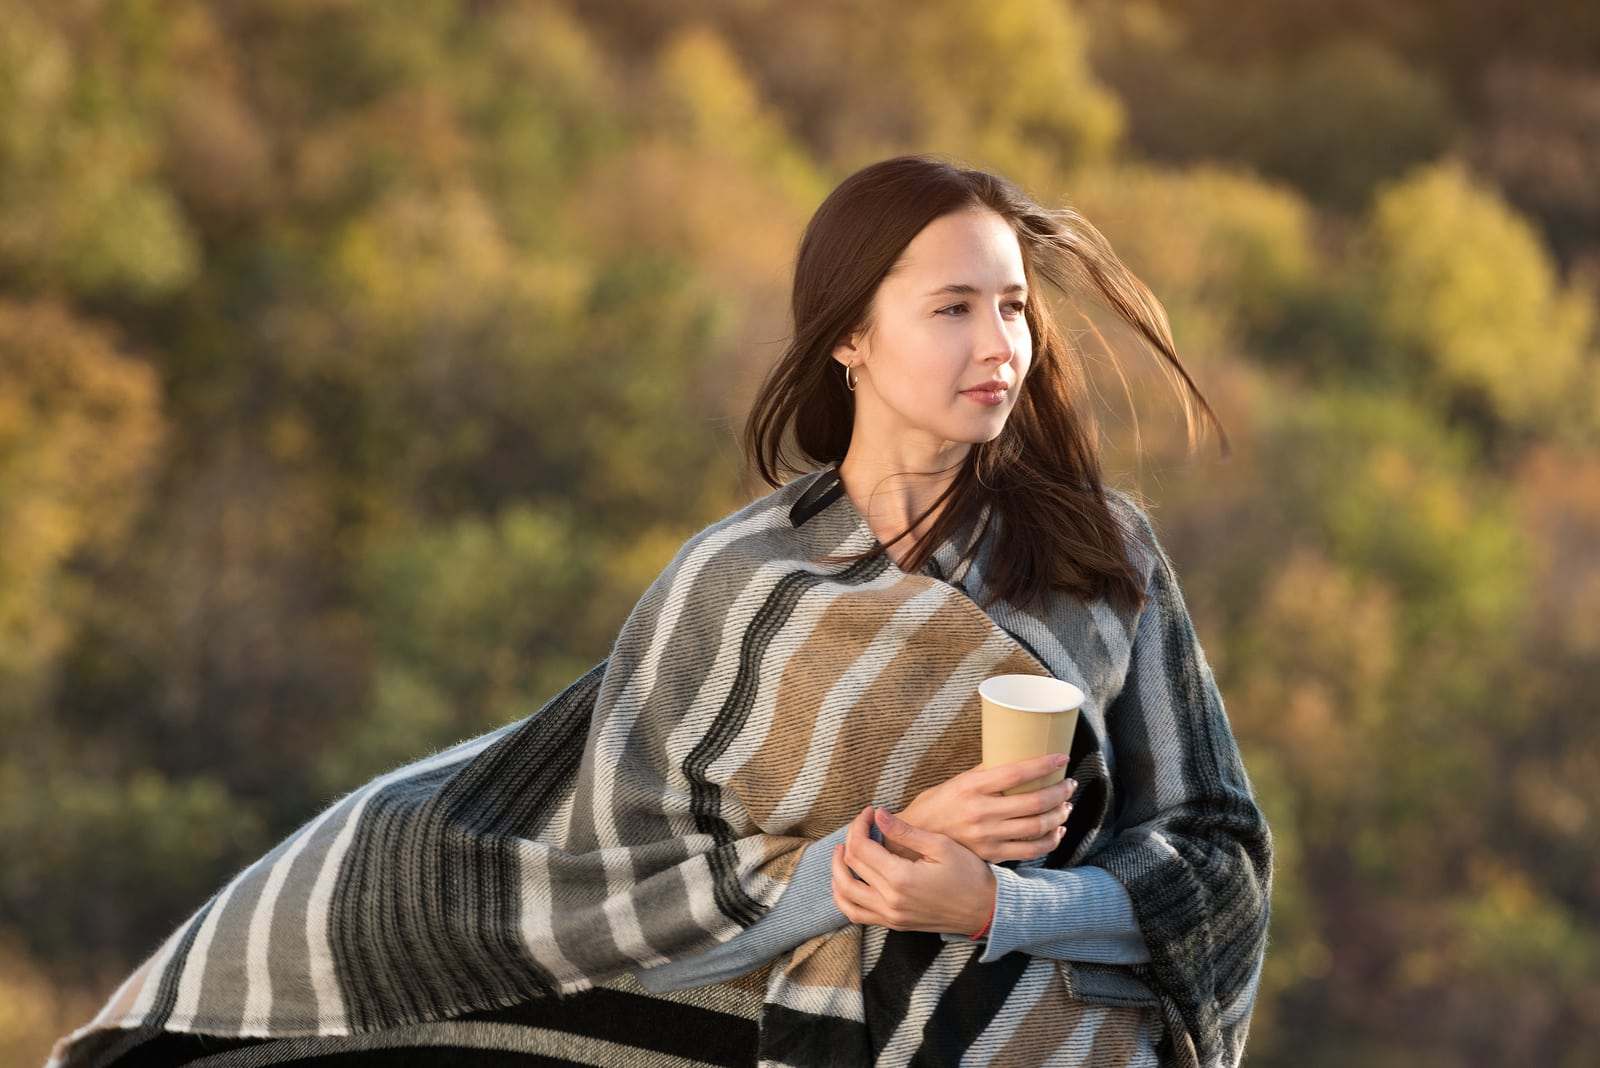 7 Ways In Which A Guarded Girl Loves Differently